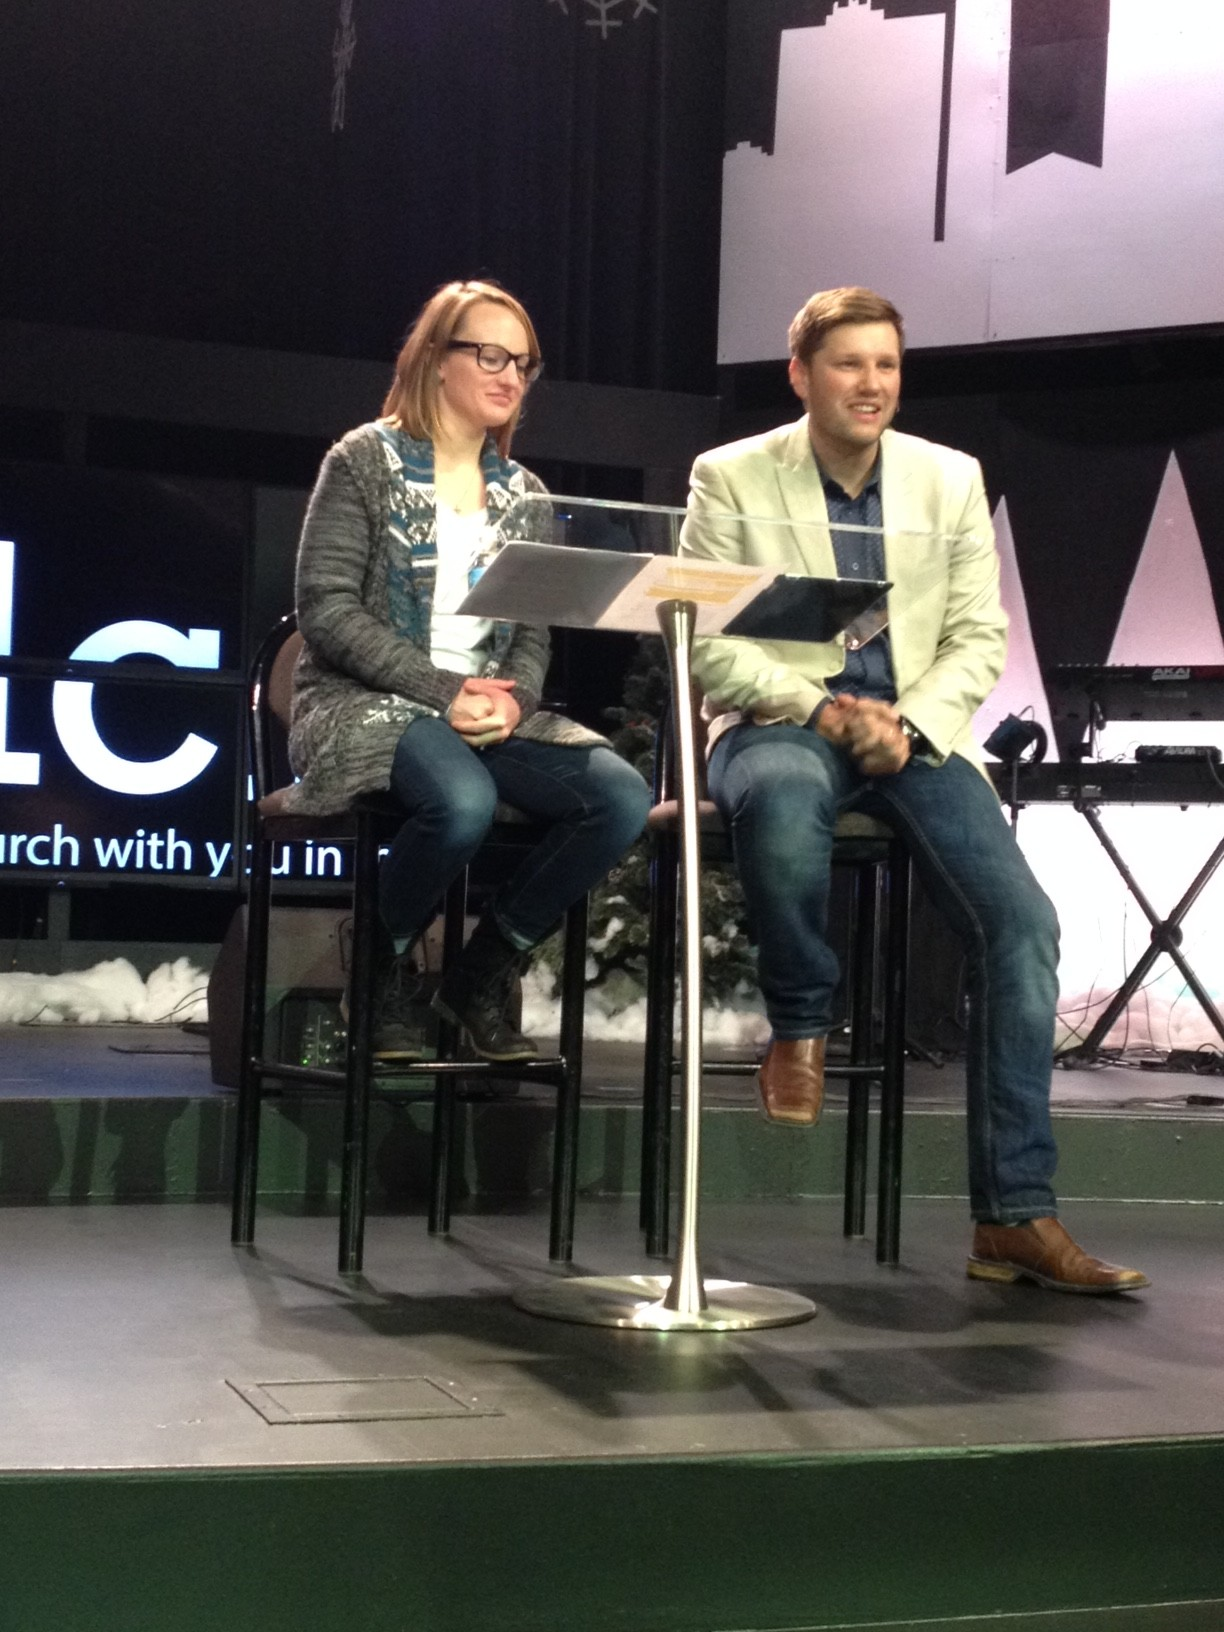 """At noon, NWI campus pastors, Sam & Taylor Hamstra, encouraged us all that """"God's Not Done with You!"""""""